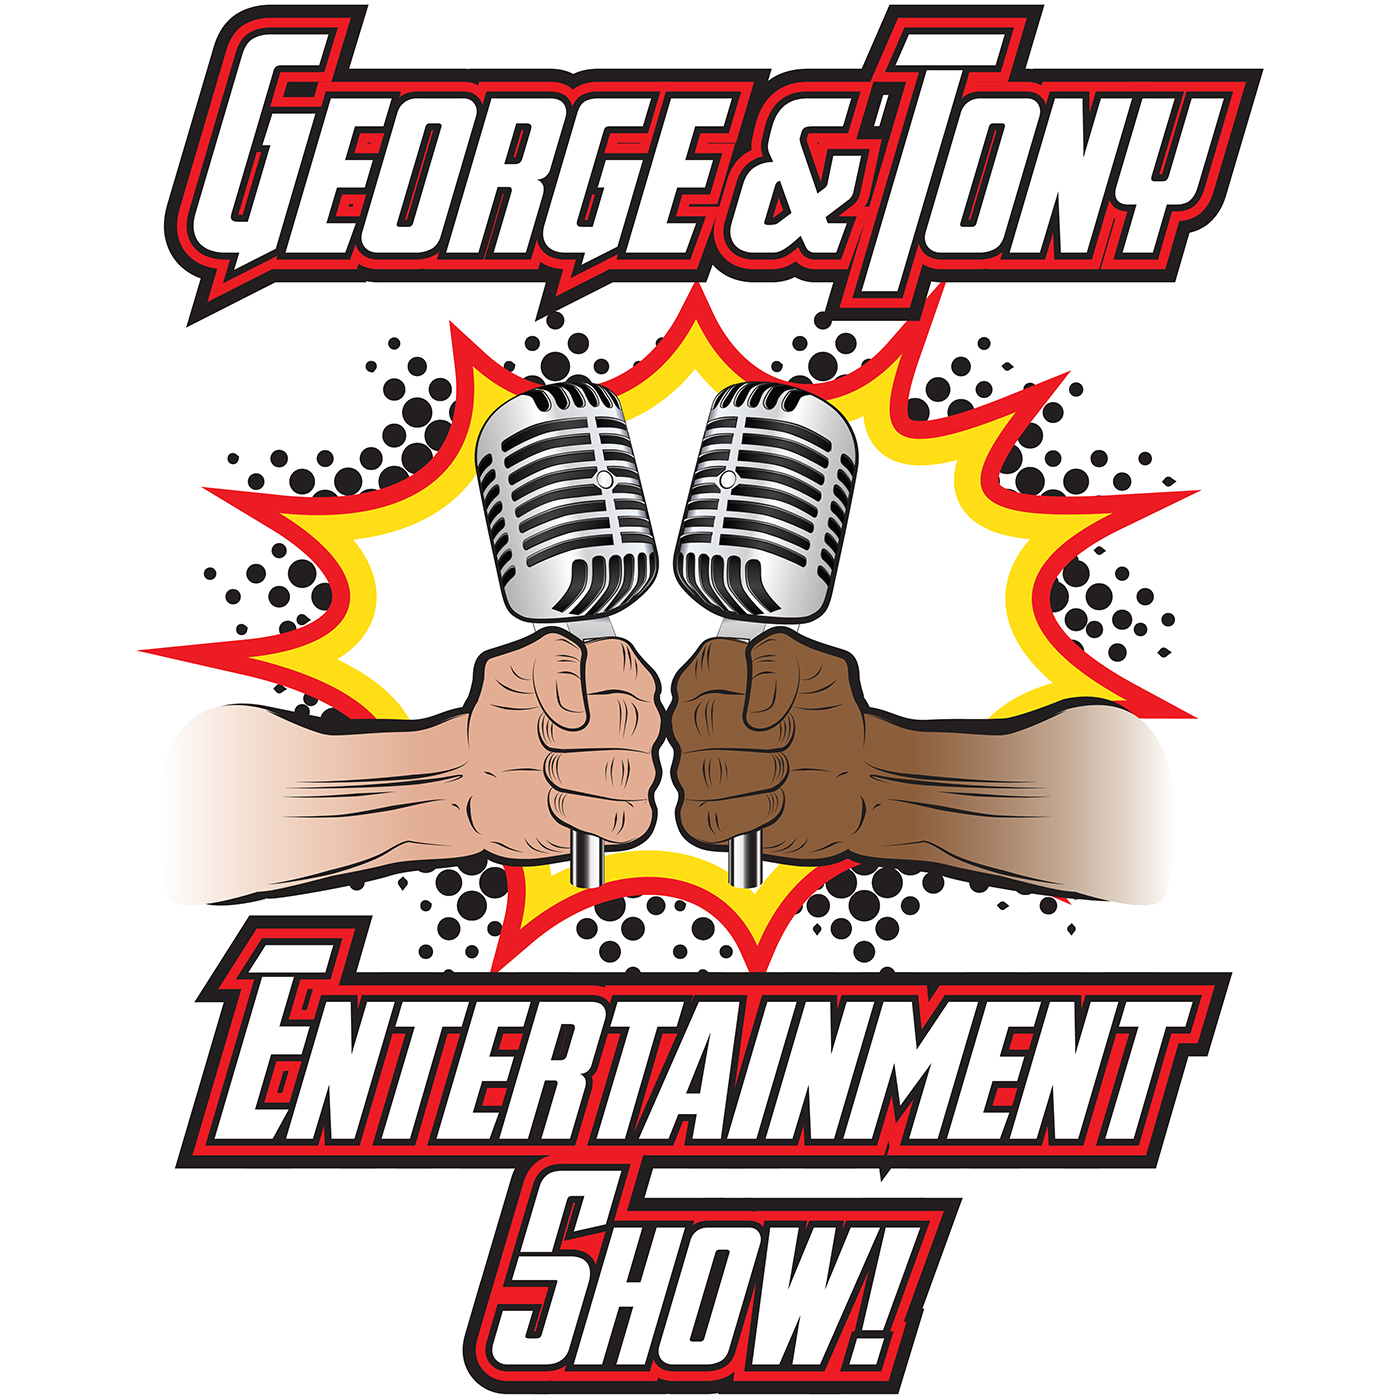 George and Tony Entertainment Show #1